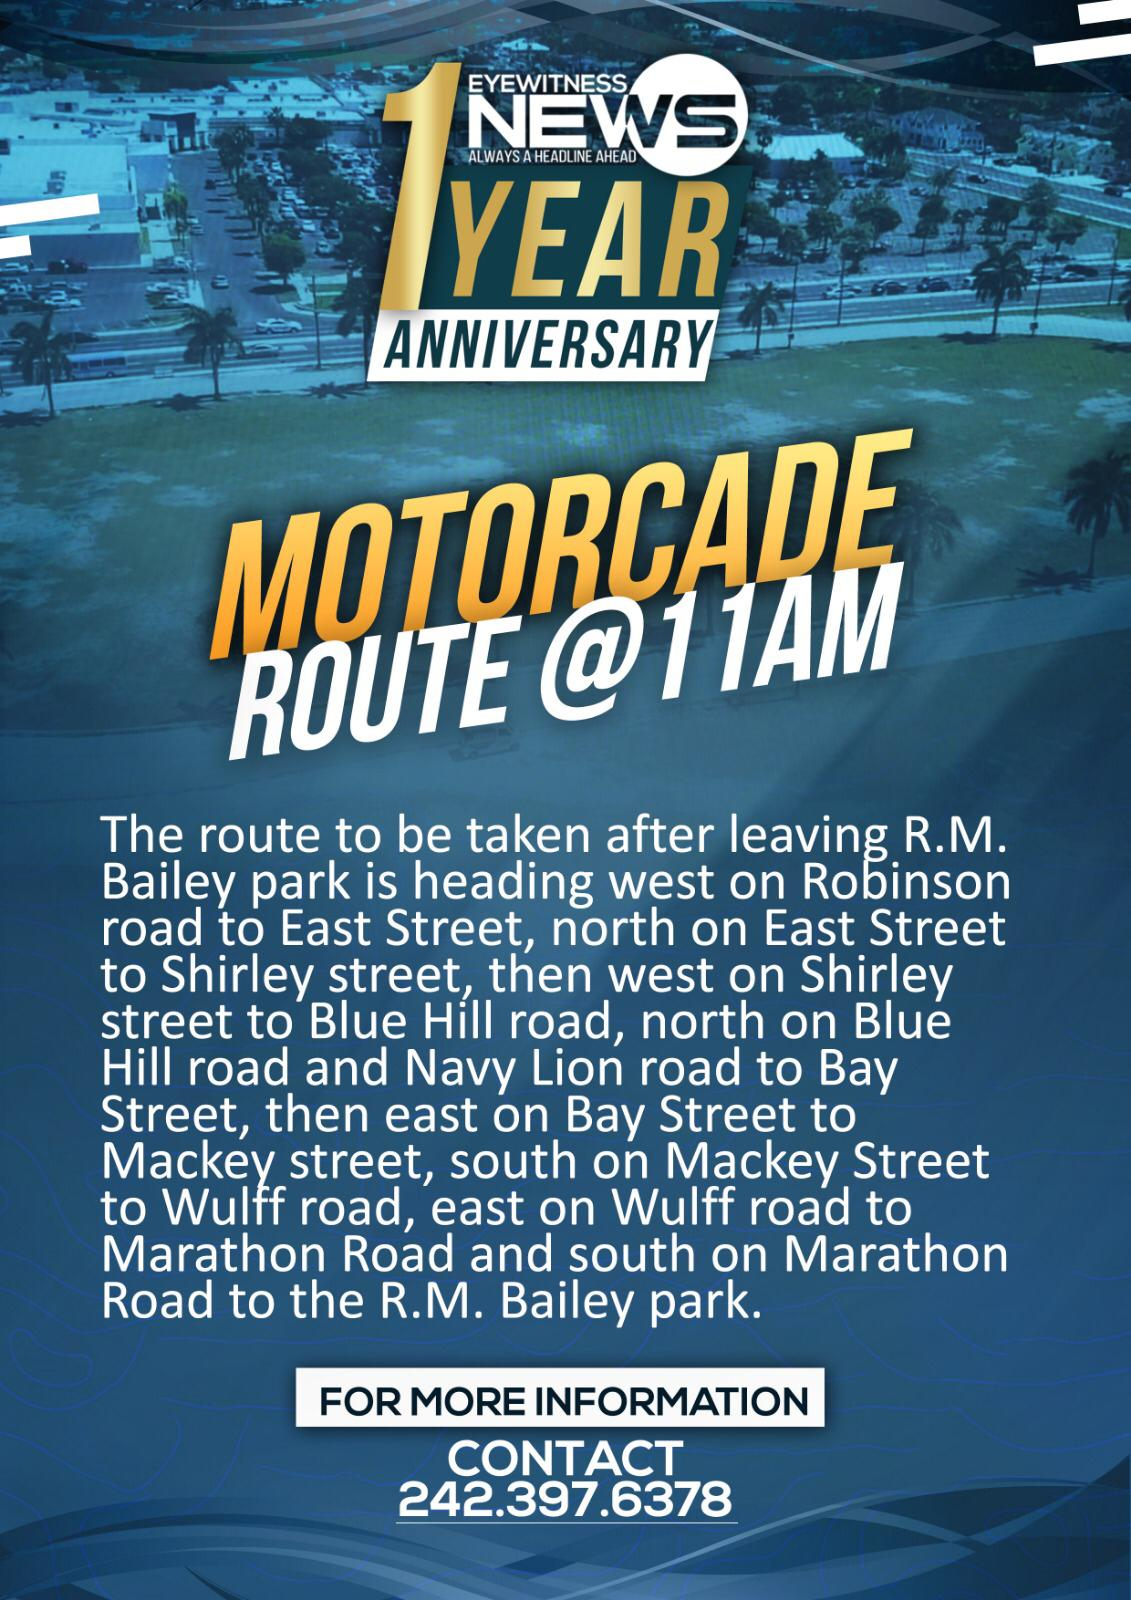 Eyewitness News motorcade route